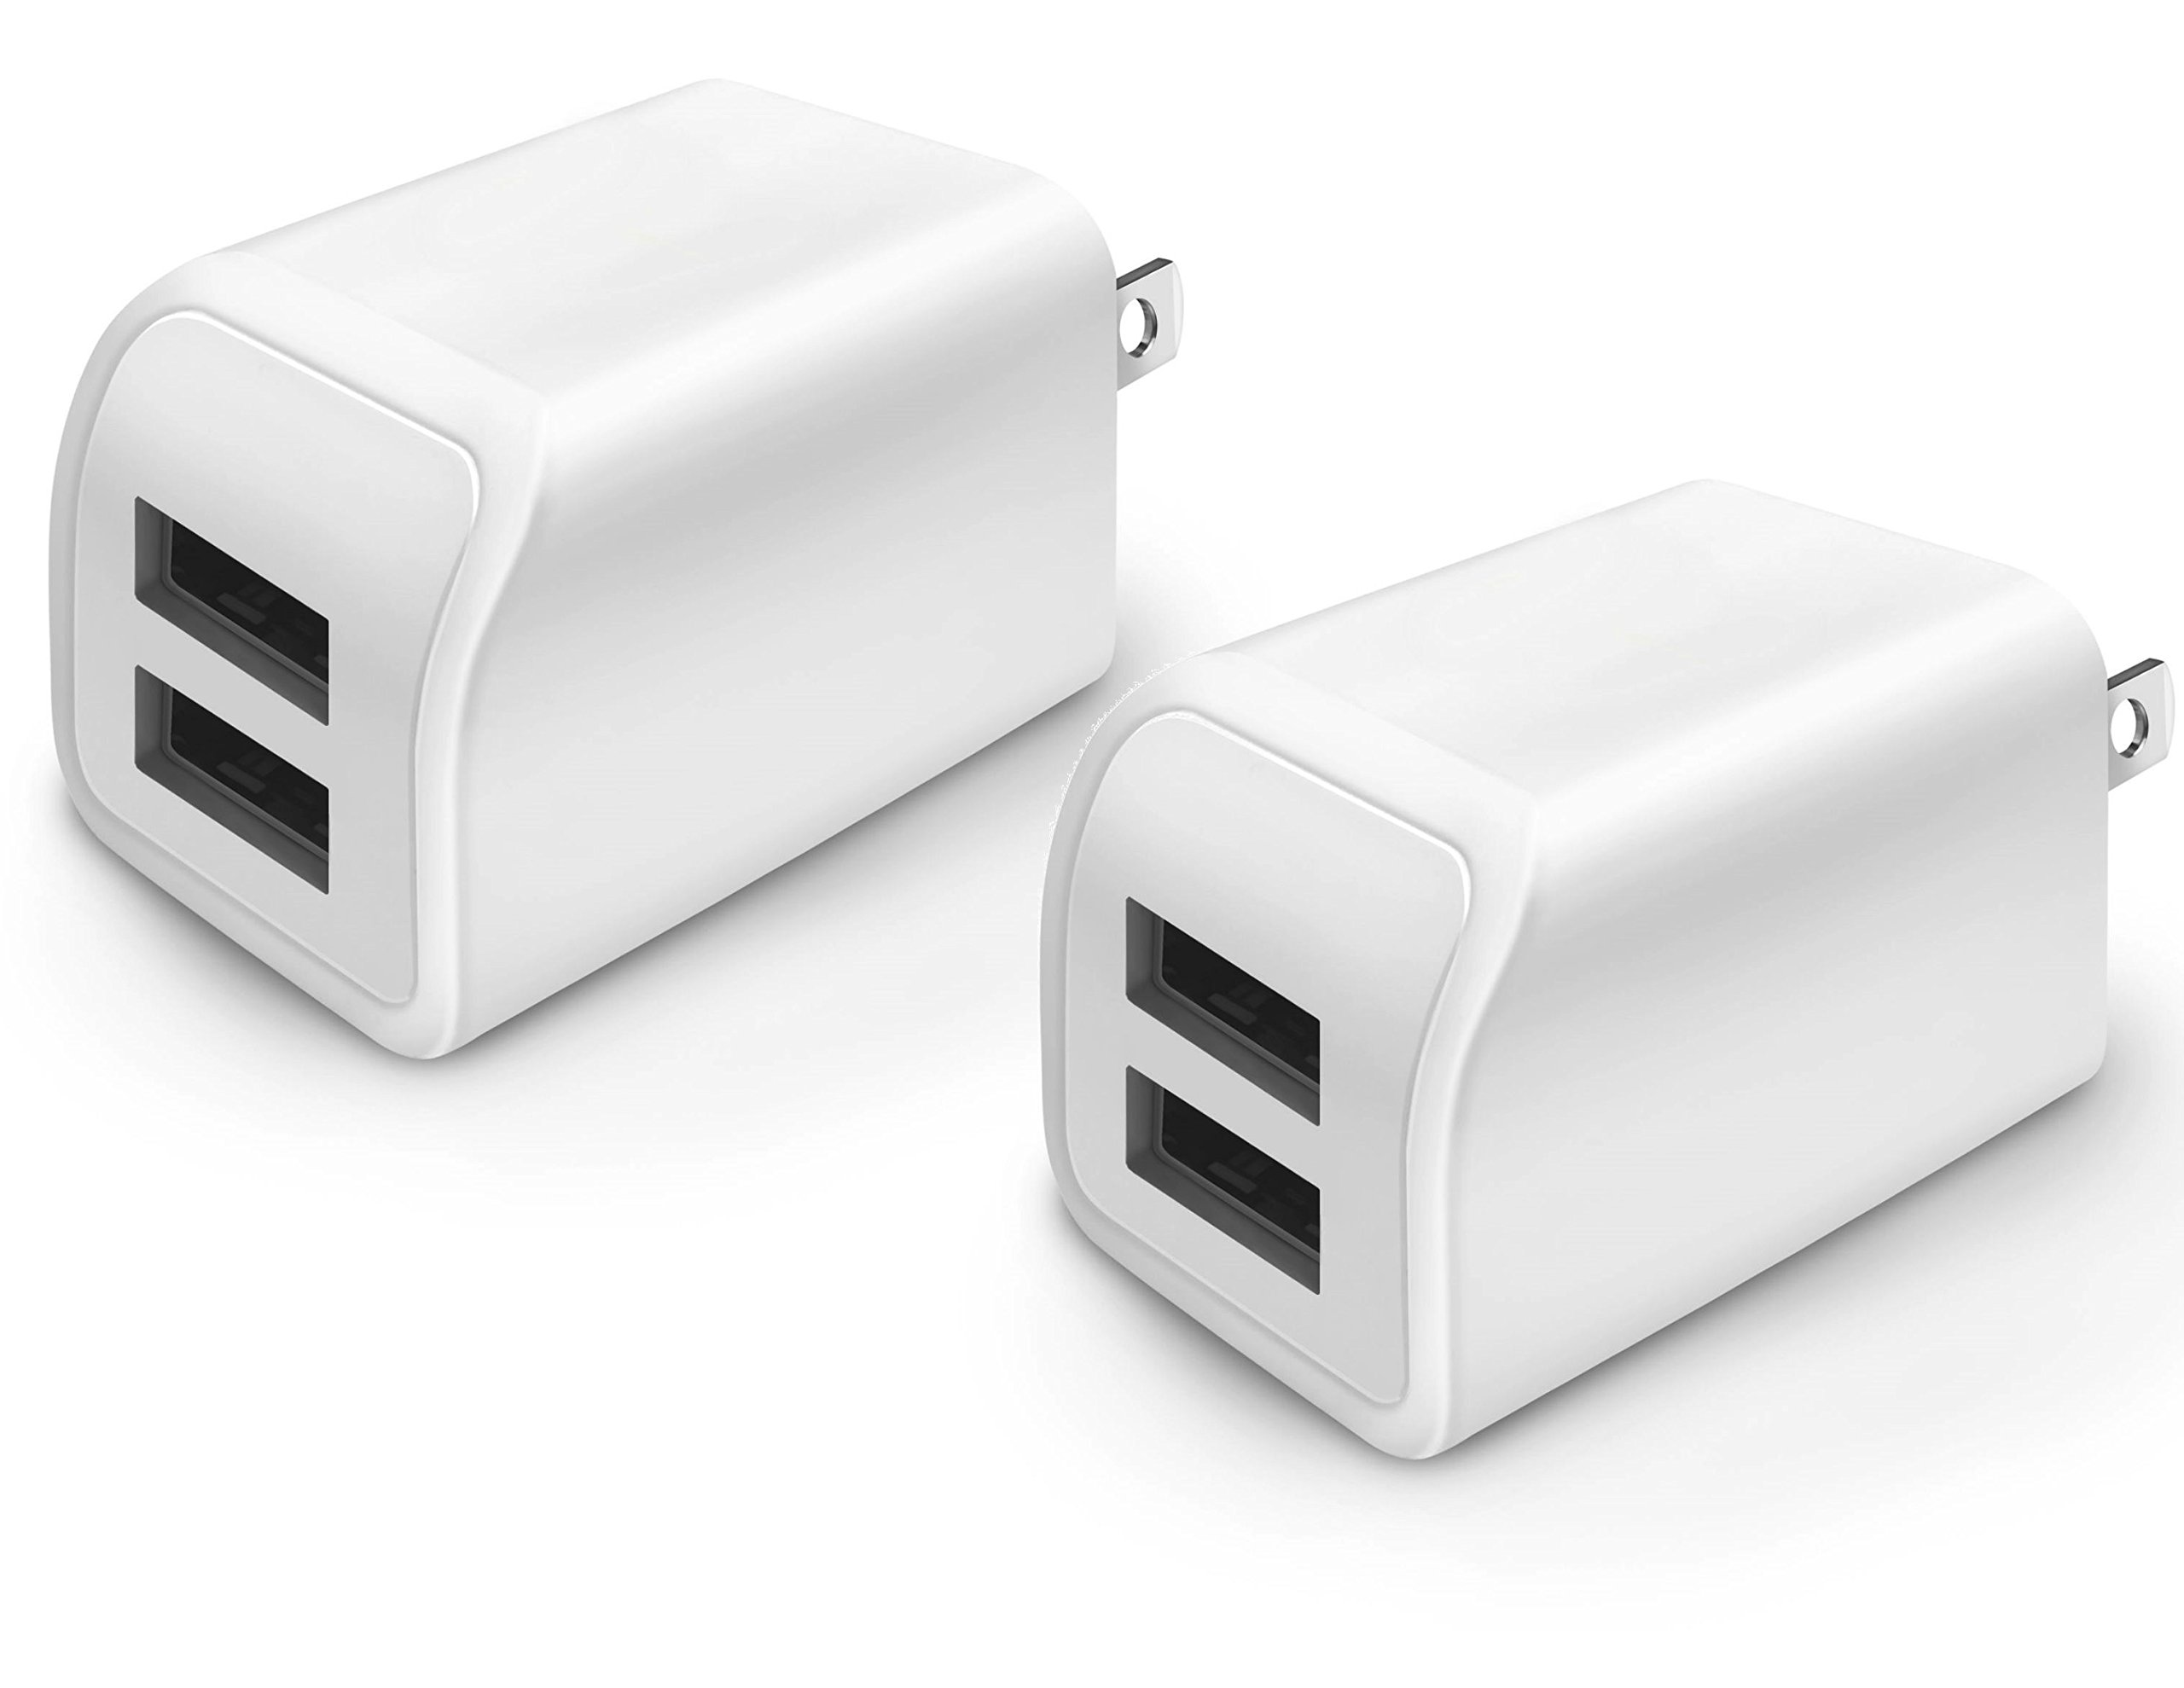 Wall Charger, 2 Pack 2A 10W Portable Dual USB Travel Wall Home Charger Power Adapter Plug for iPhone 7 / 6S / Plus, Samsung Galaxy, Motorola, HTC, Other Smartphone (White)